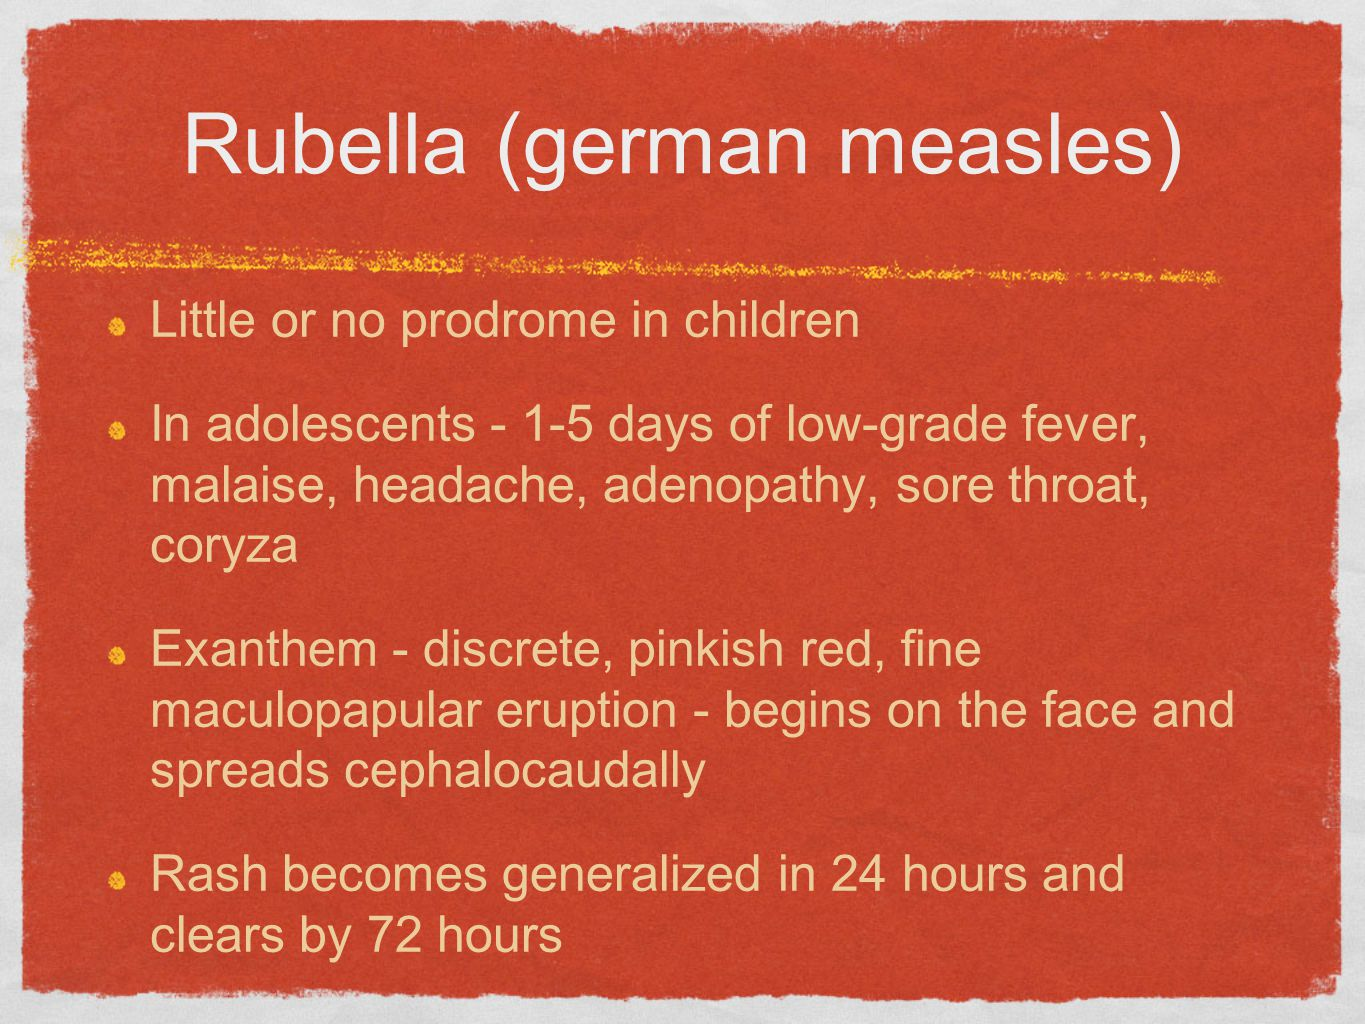 Rubella (german measles) Little or no prodrome in children In adolescents - 1-5 days of low-grade fever, malaise, headache, adenopathy, sore throat, coryza Exanthem - discrete, pinkish red, fine maculopapular eruption - begins on the face and spreads cephalocaudally Rash becomes generalized in 24 hours and clears by 72 hours